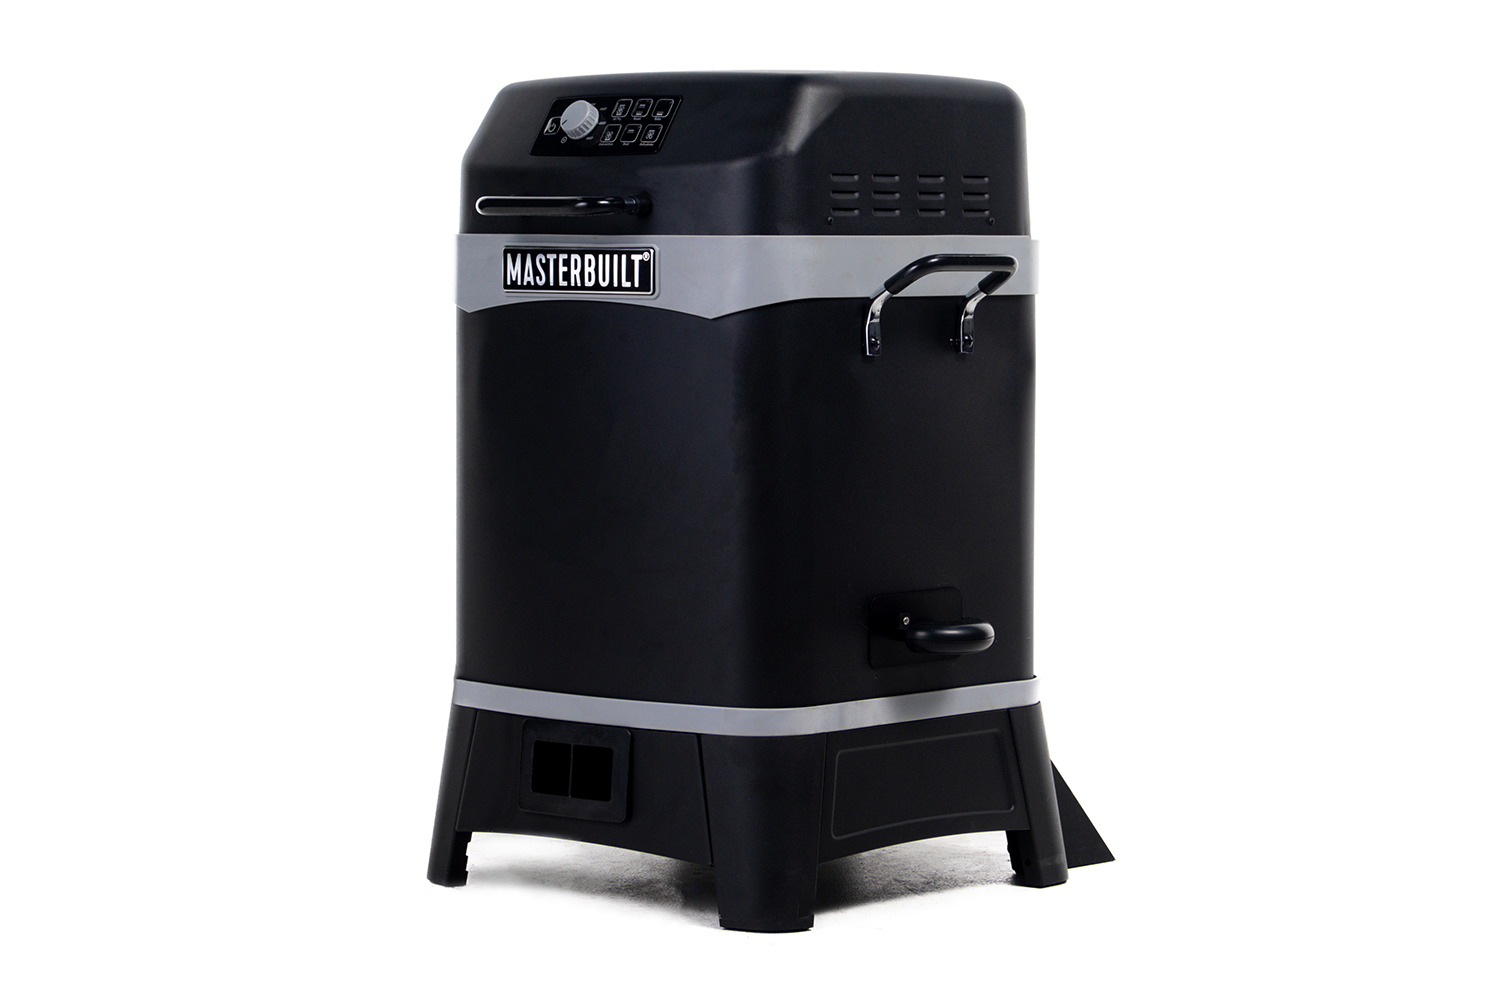 Cook more delicious meals that are healthy and tasty with Masterbuilt's Outdoor Air Fryer